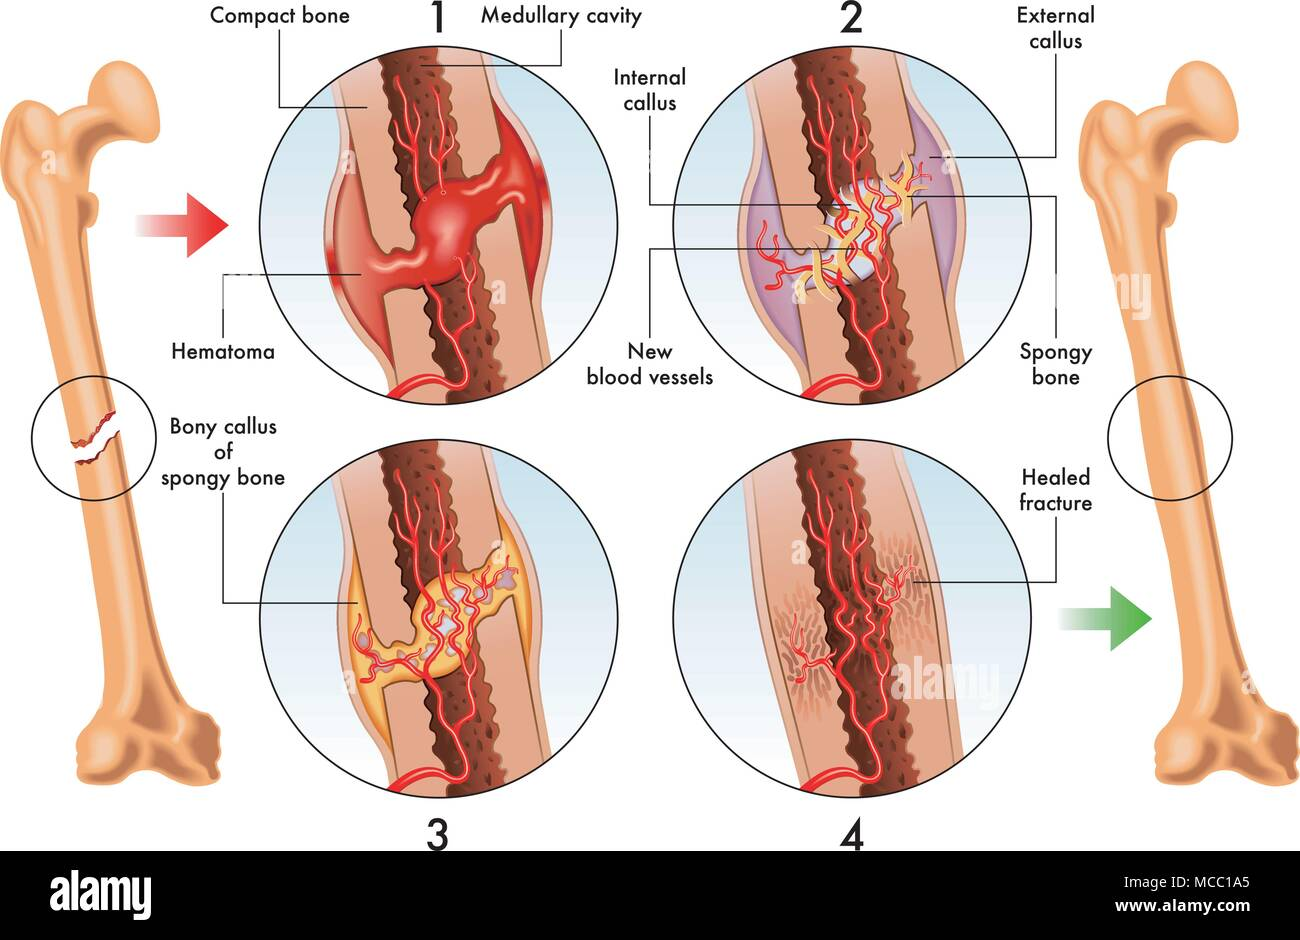 vector medical illustration of stages of bone fracture repair - Stock Image